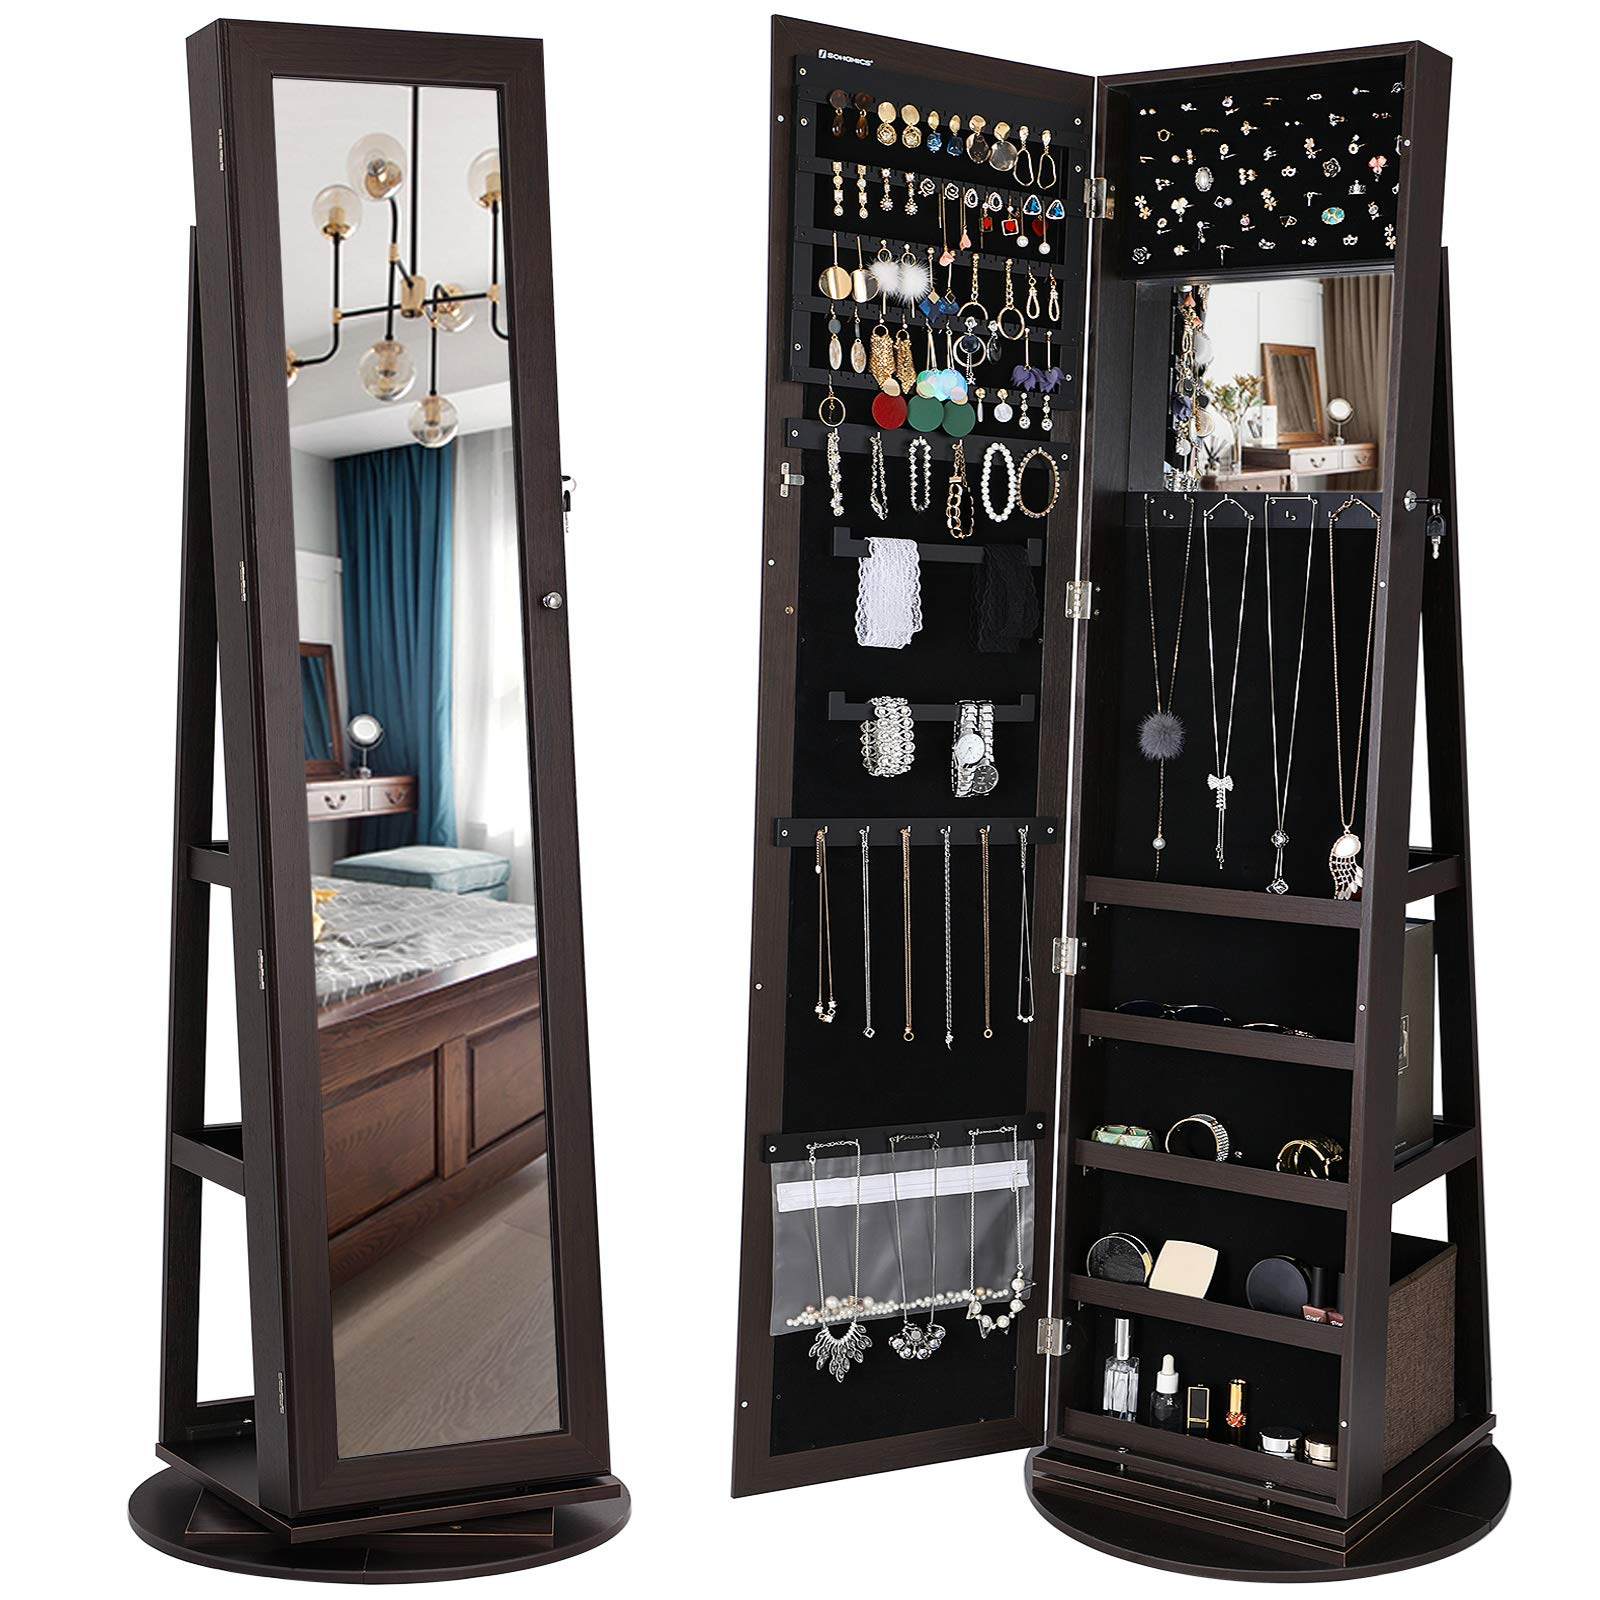 SONGMICS Rotatable Lockable Organizer UJJC62BR